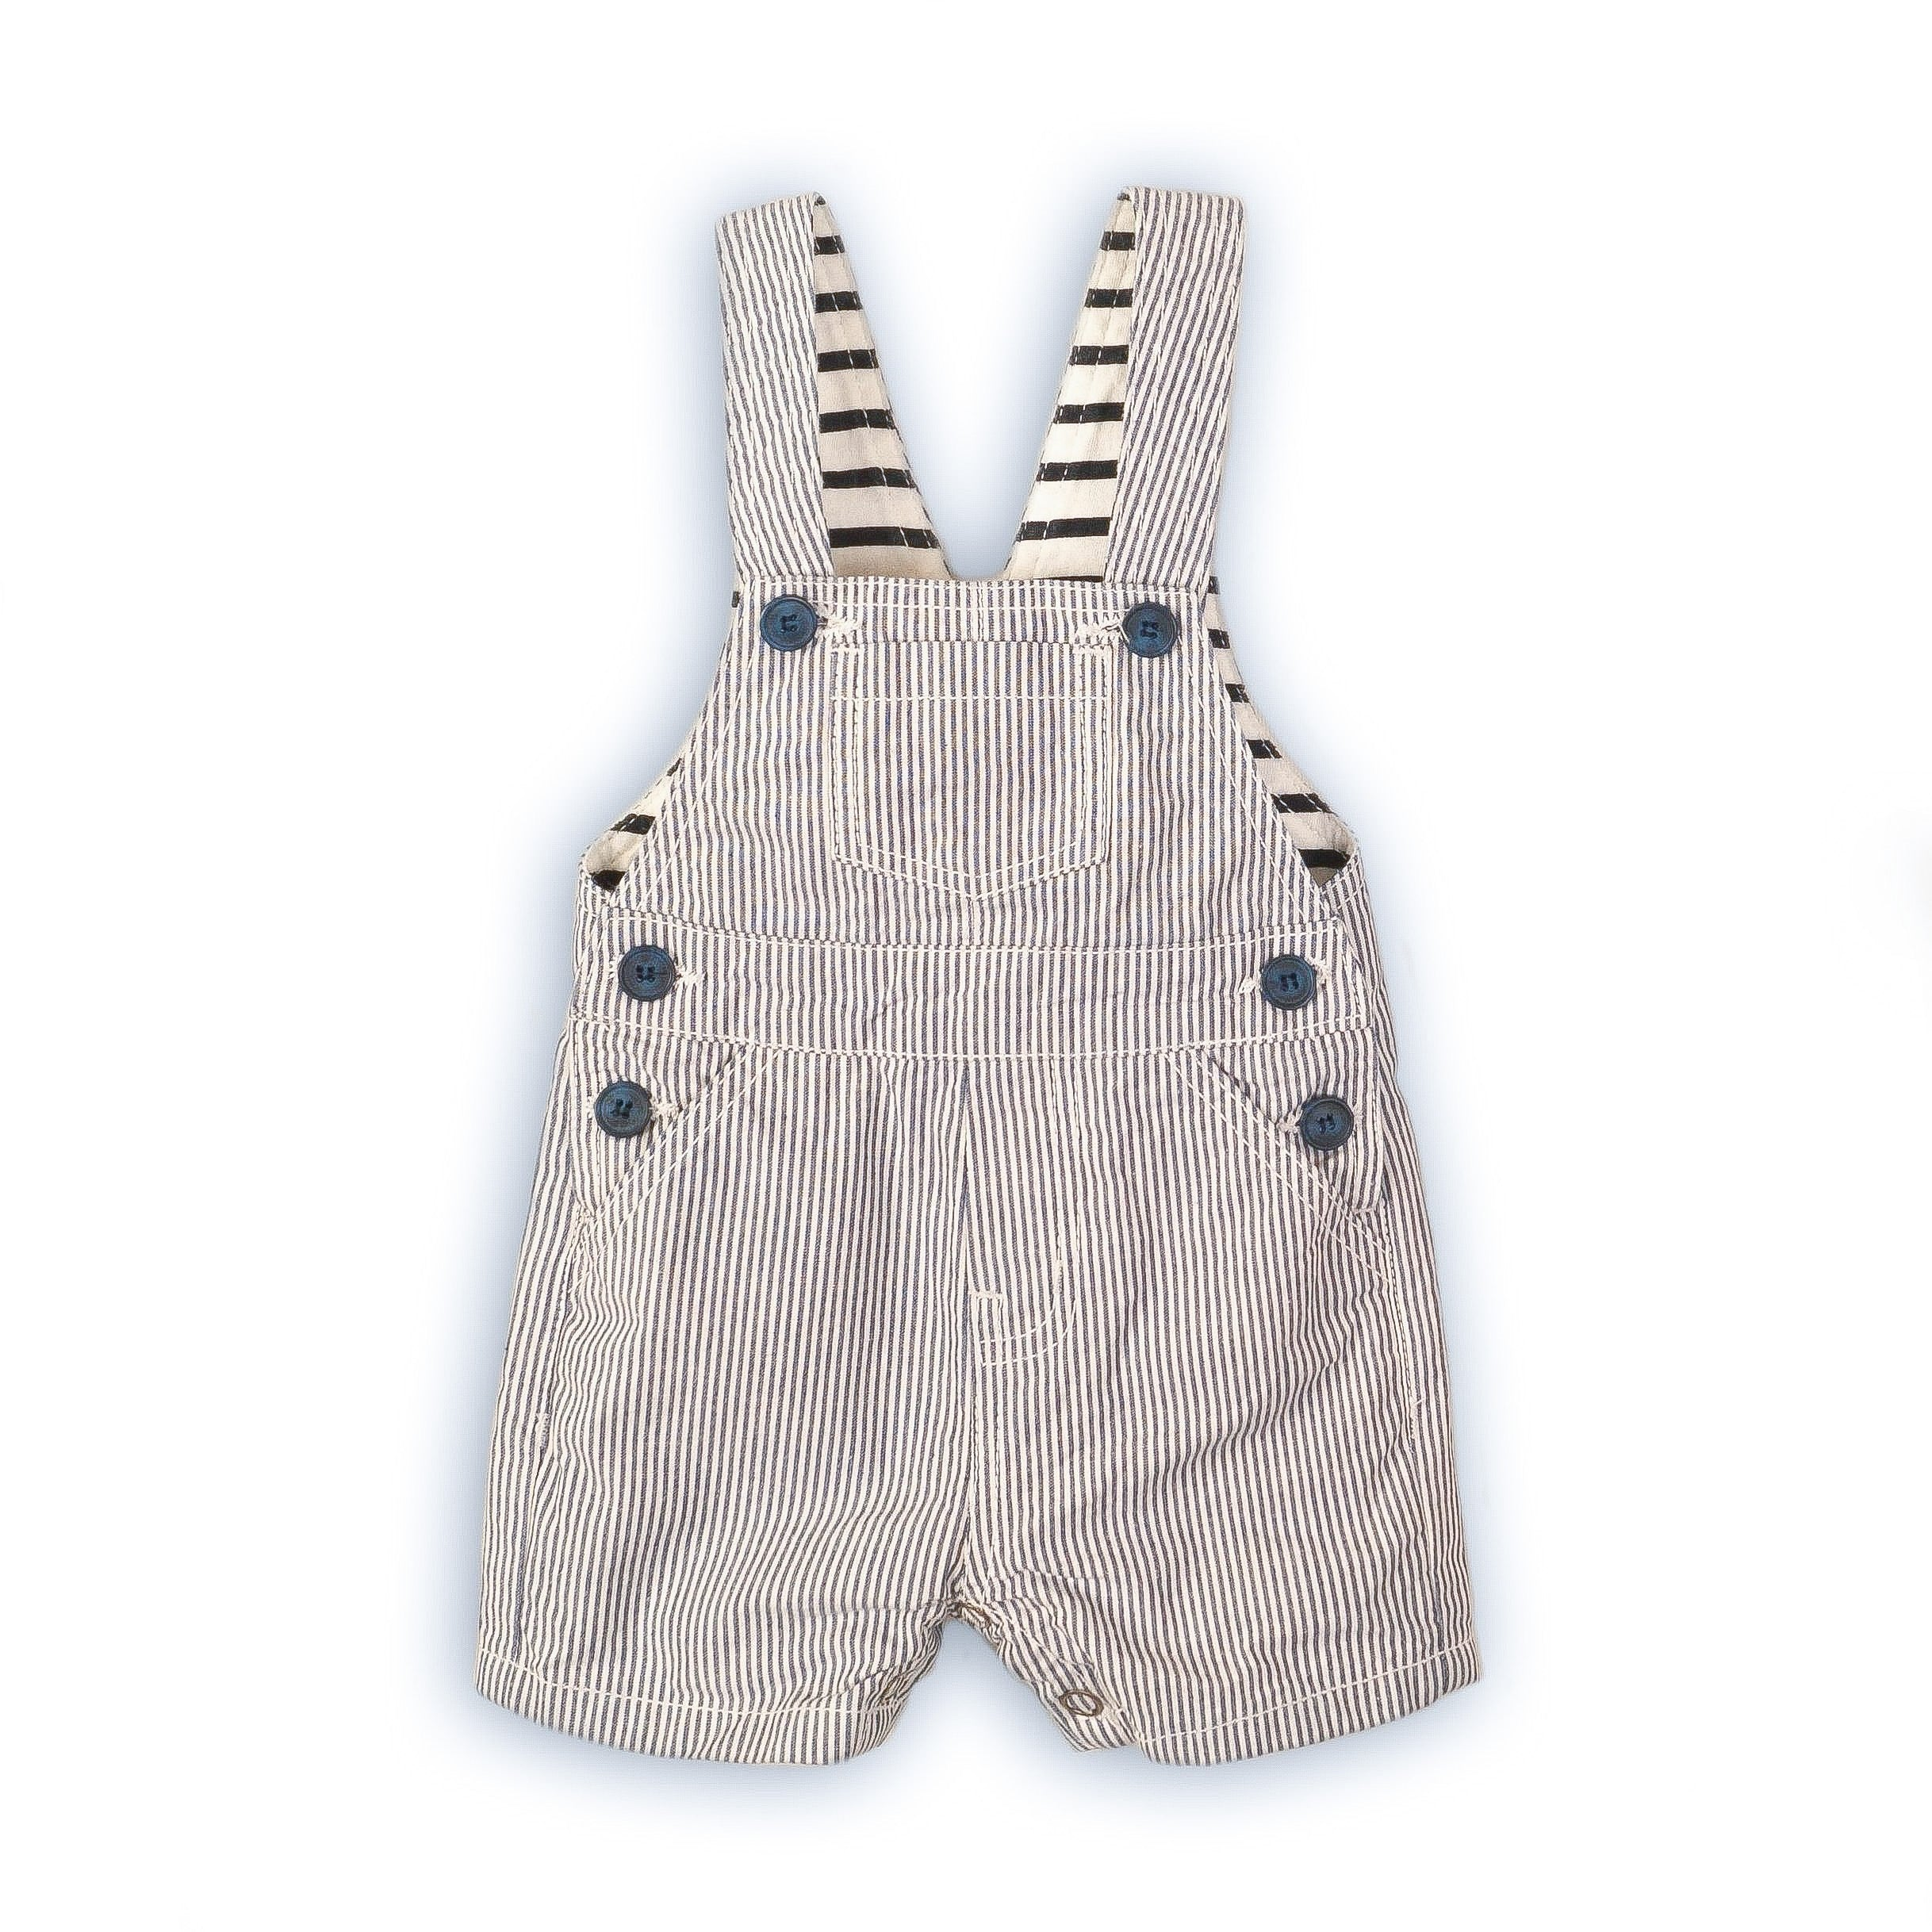 9-12 months - Seagull stripe bay dungarees